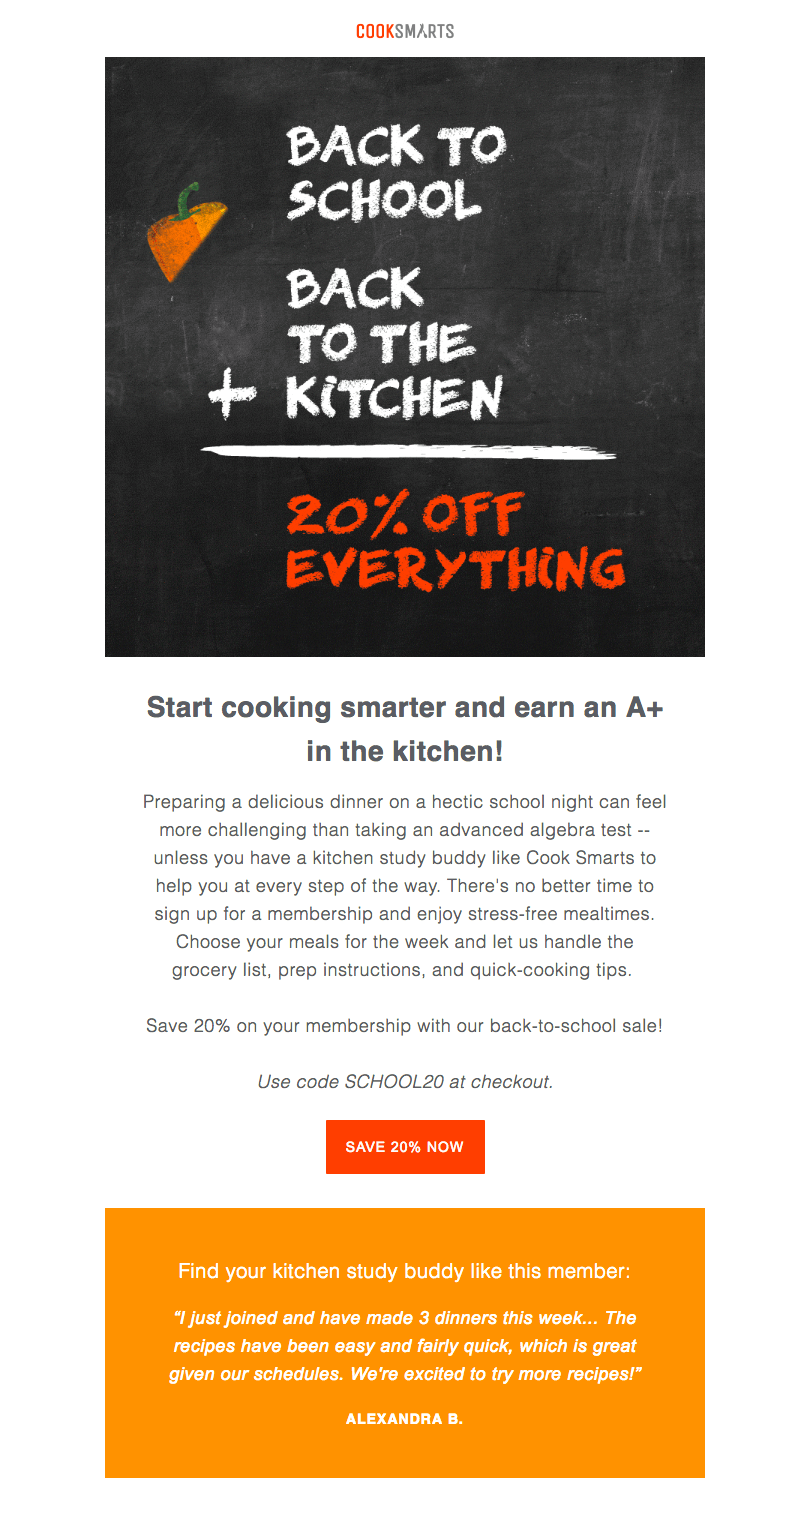 Cook Smarts back-to-school sales emails